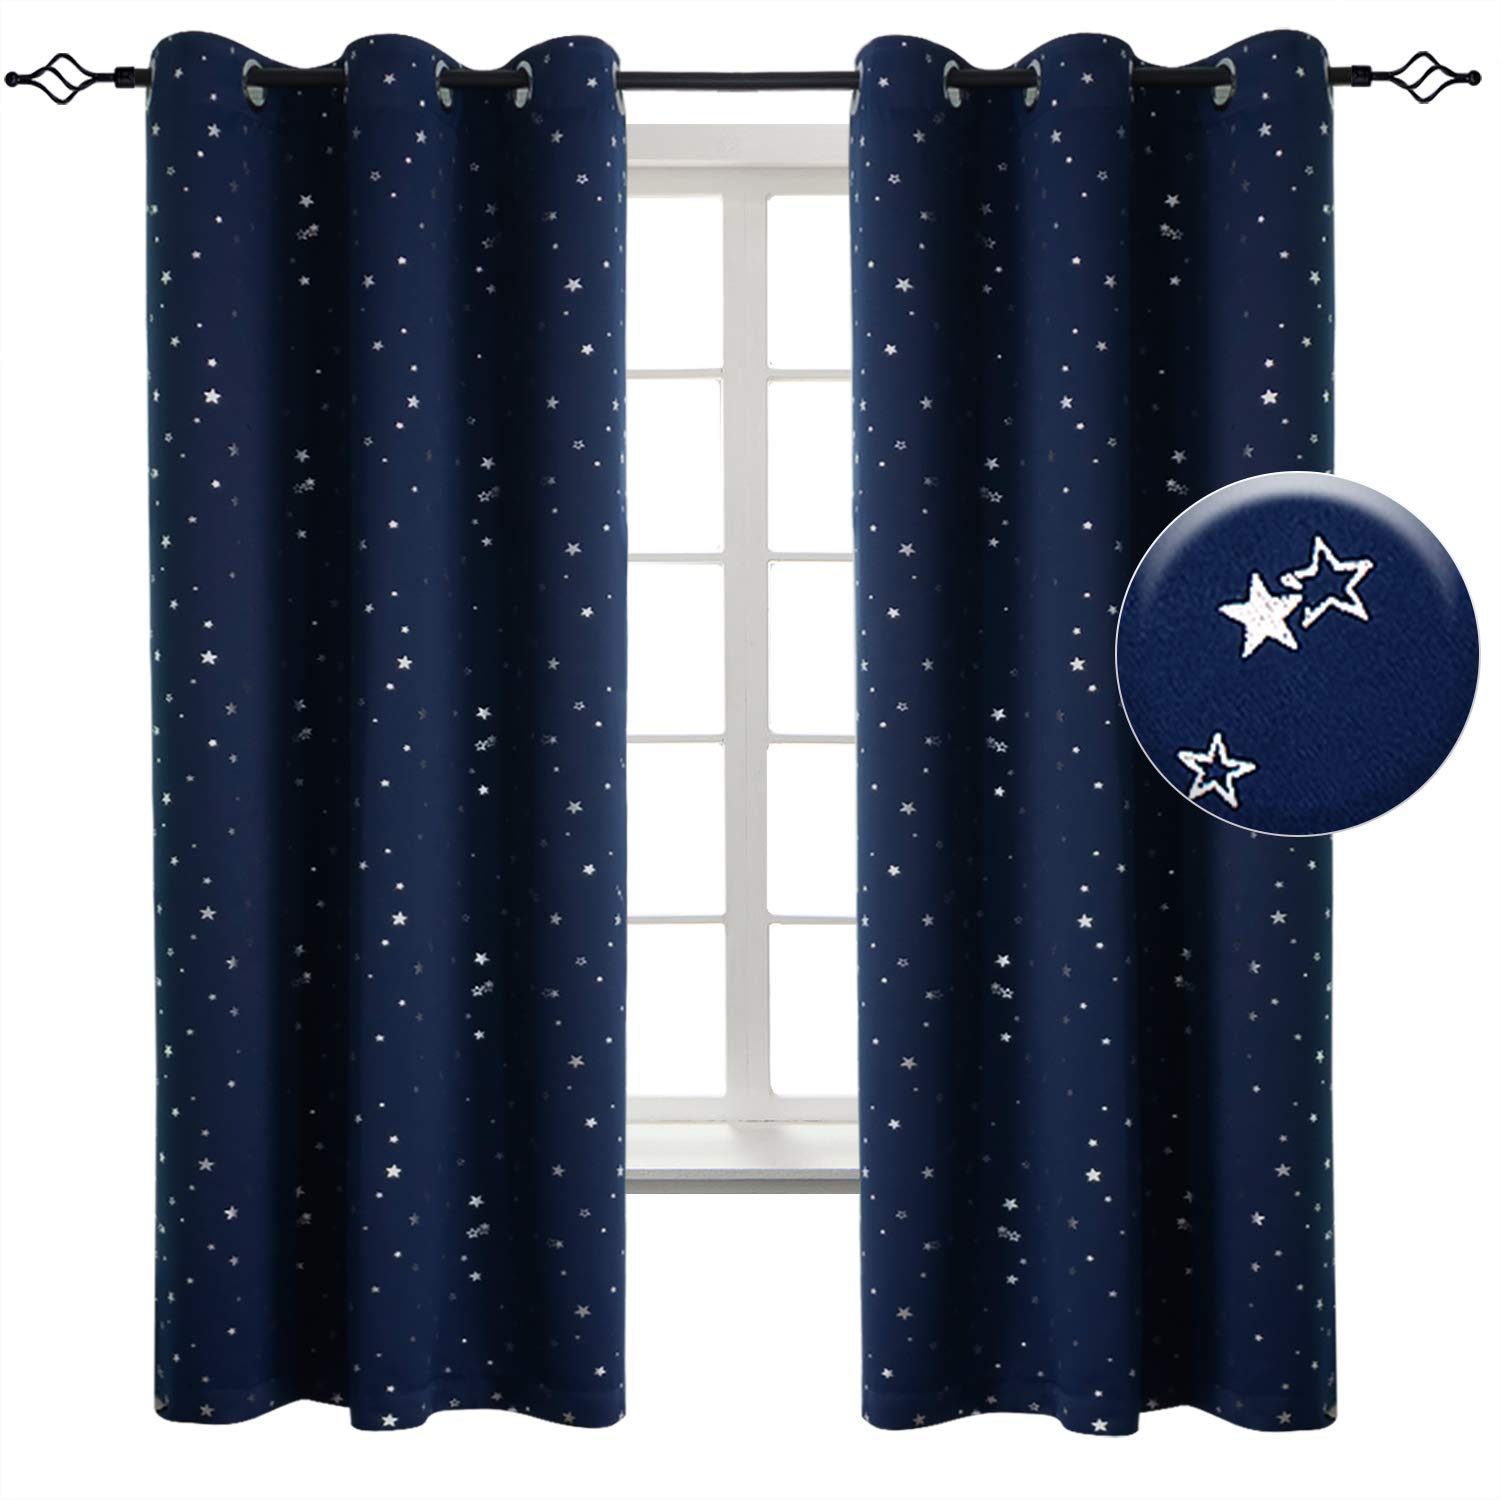 BGment Navy Star Blackout Curtains for Kid's Bedroom